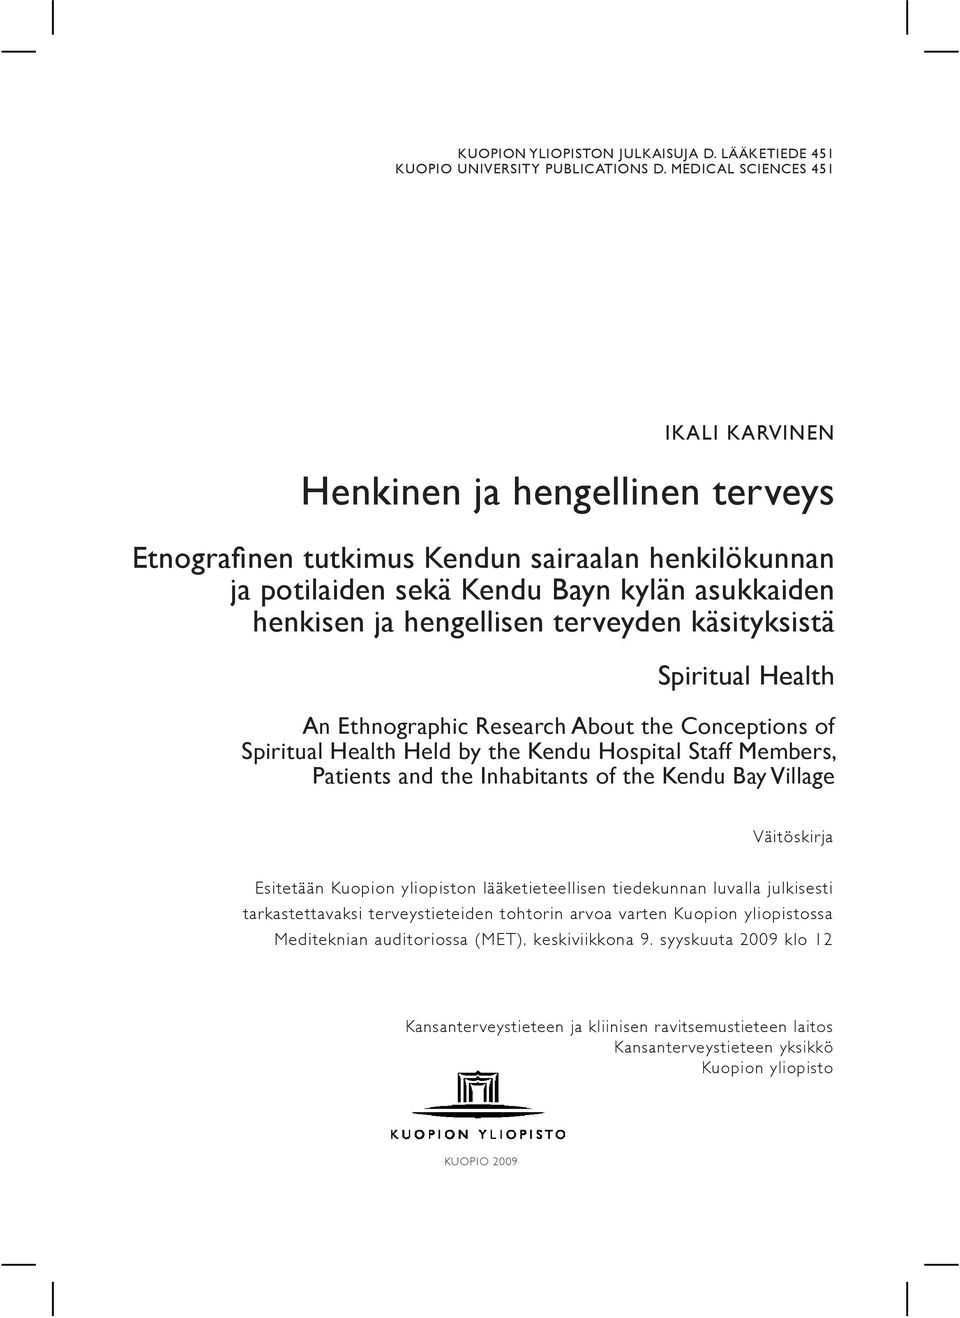 terveyden käsityksistä Spiritual Health An Ethnographic Research About the Conceptions of Spiritual Health Held by the Kendu Hospital Staff Members, Patients and the Inhabitants of the Kendu Bay